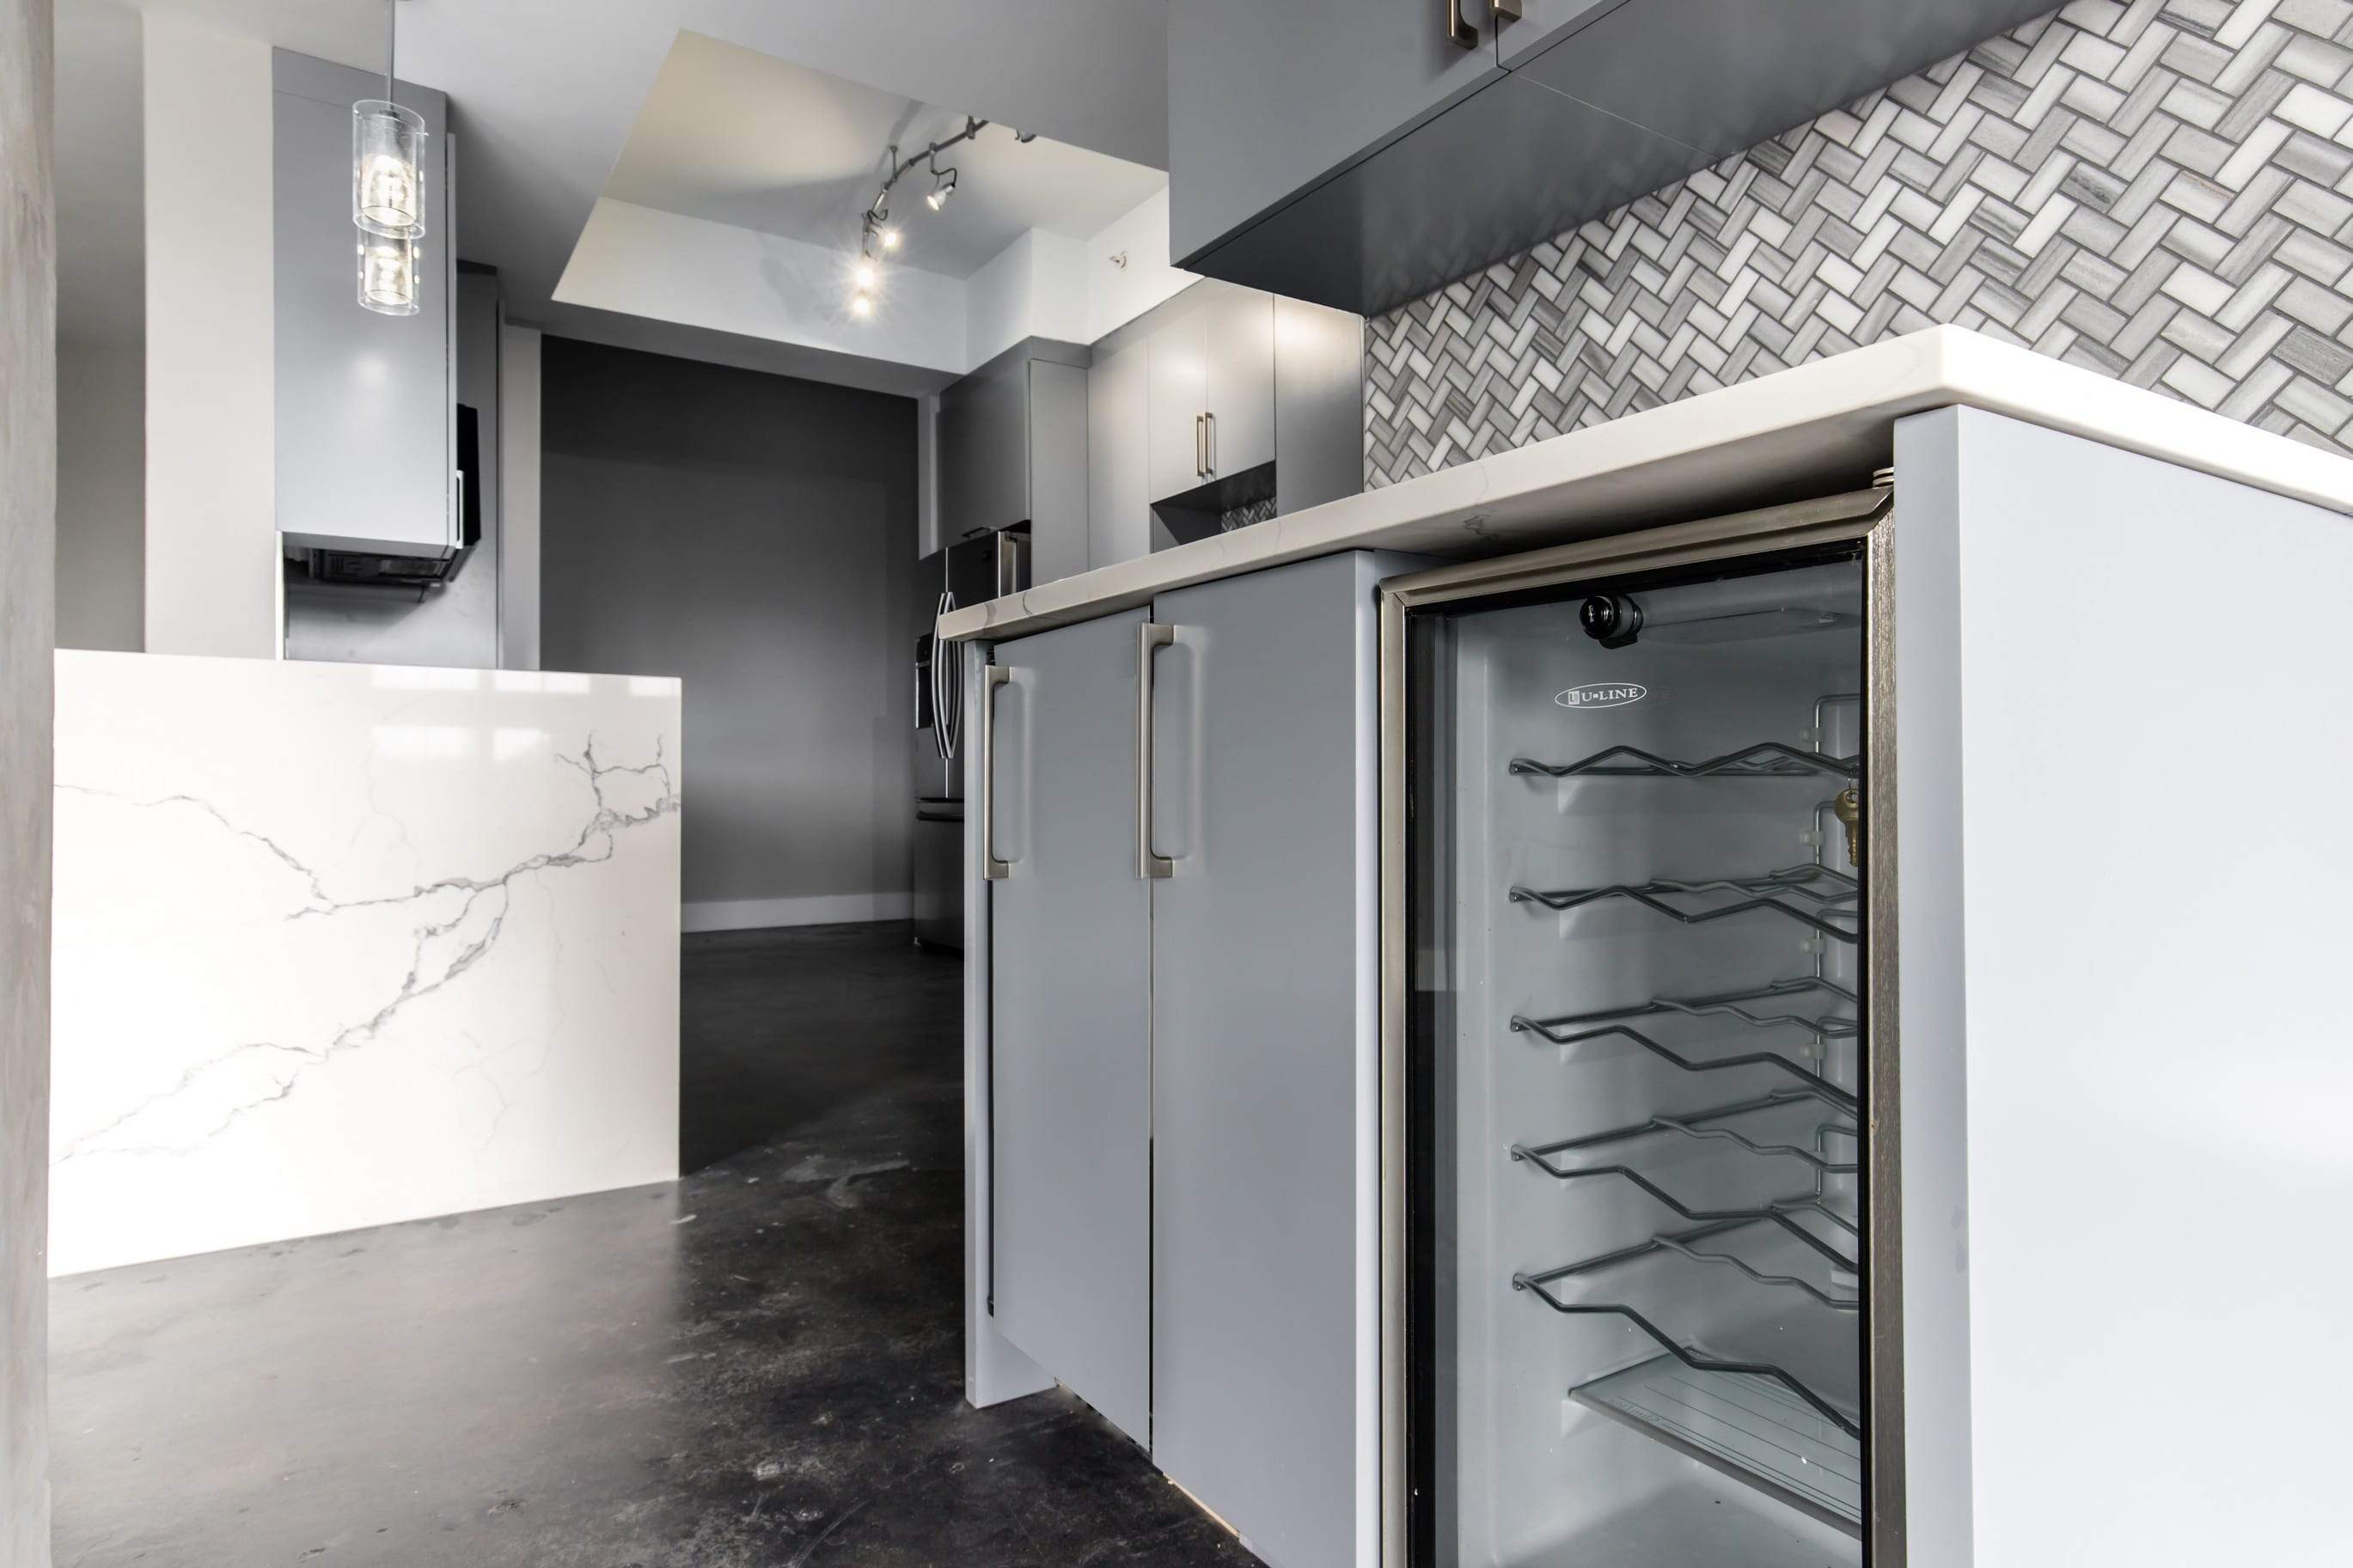 Custom Cabinets Designed with built-in wine coolers and docking stations